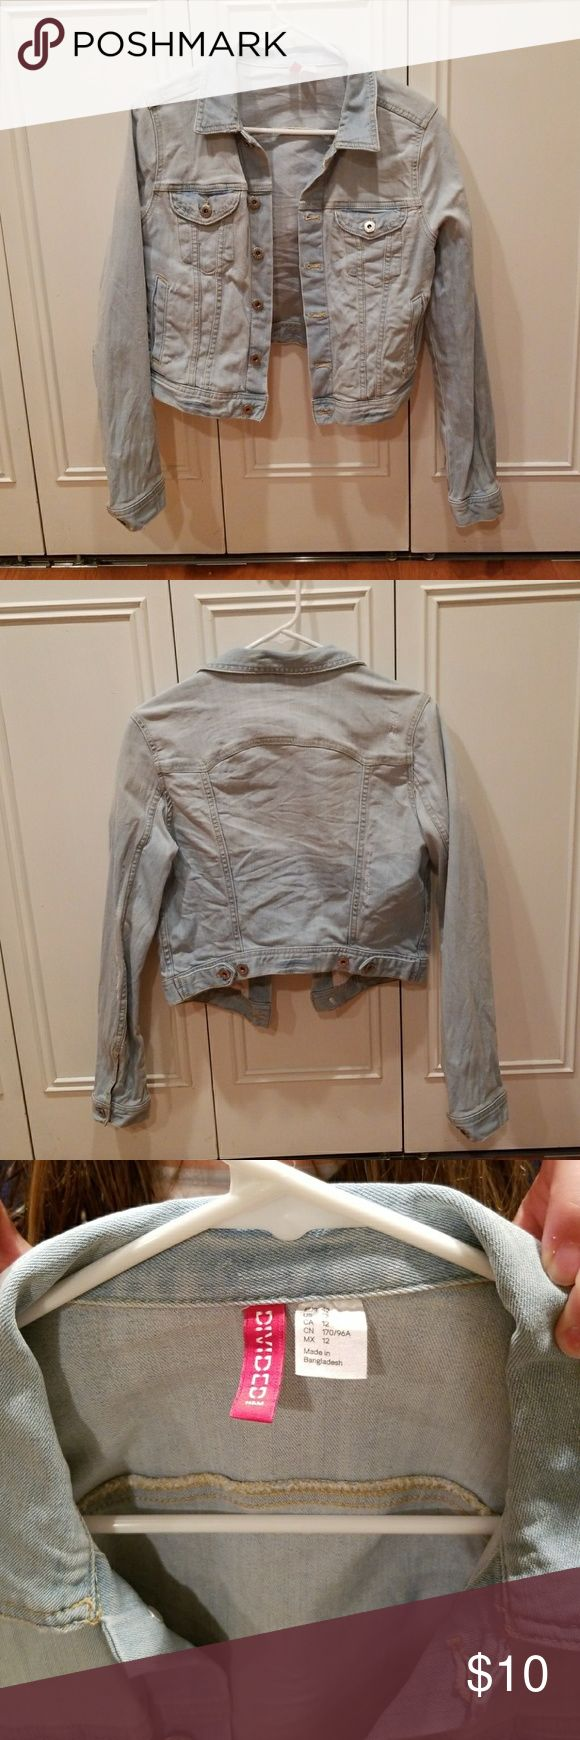 Women's Jean Jacket Denim, button up, four pockets, no stains, Size US 12(Small fitting), short H&M Jackets & Coats Jean Jackets